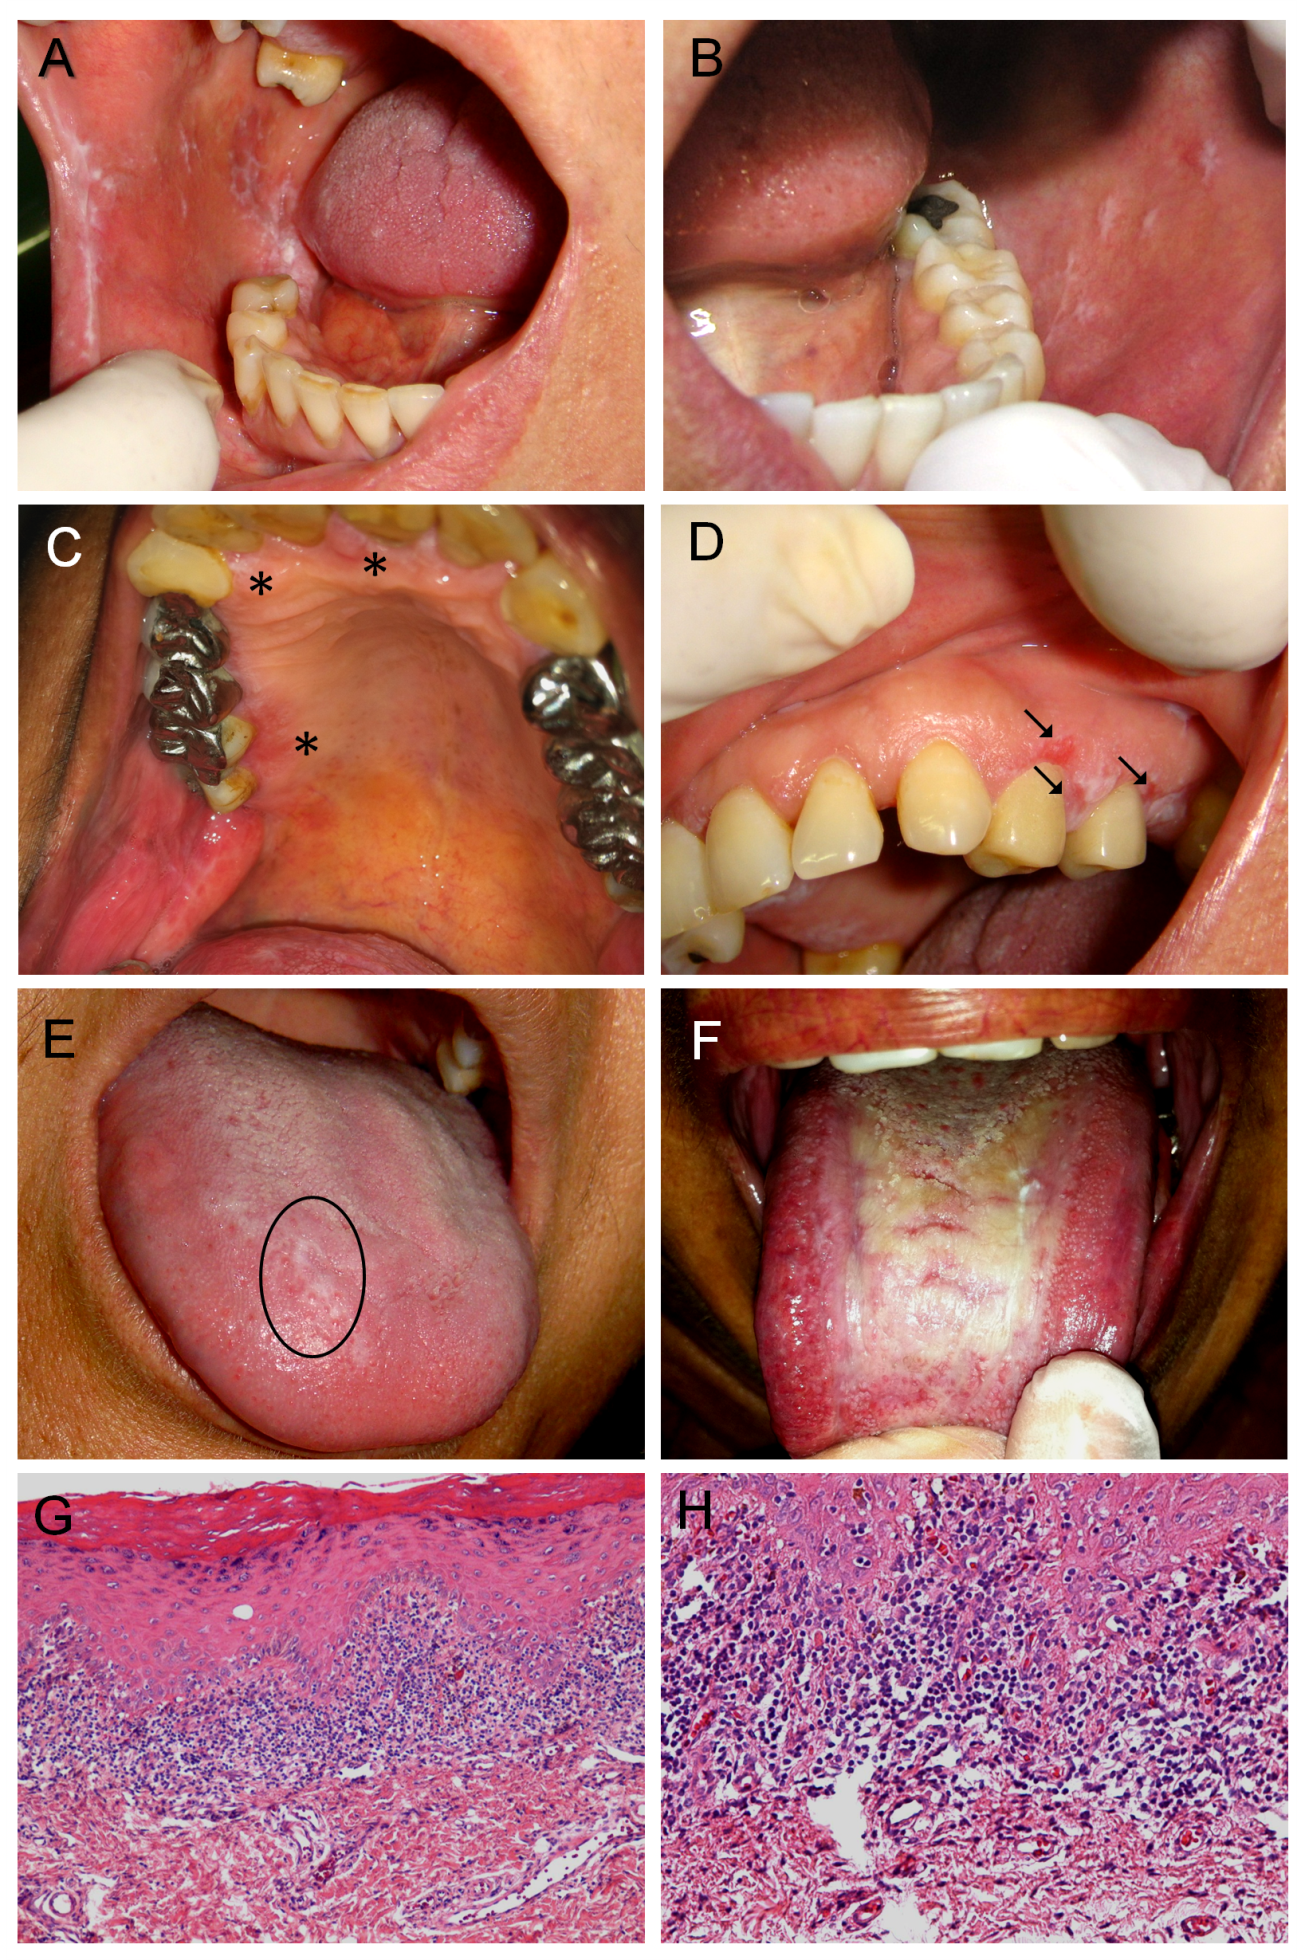 Oral Hpv Related Diseases A Review And An Update Intechopen